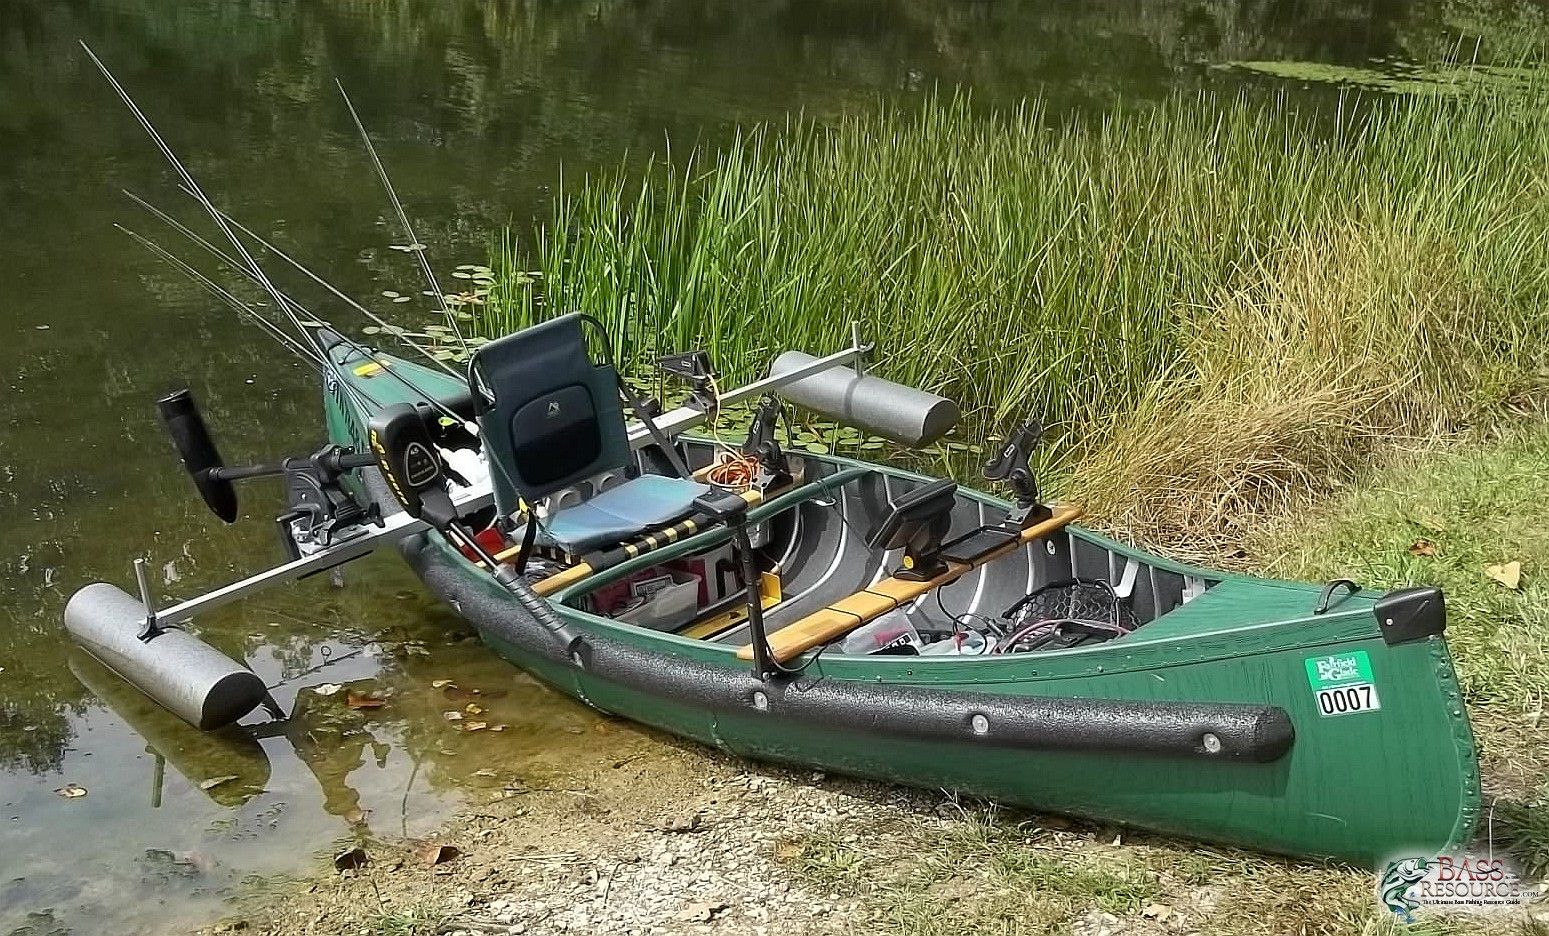 Best 25 fishing canoe ideas on pinterest canoe boat for Best canoe for fishing